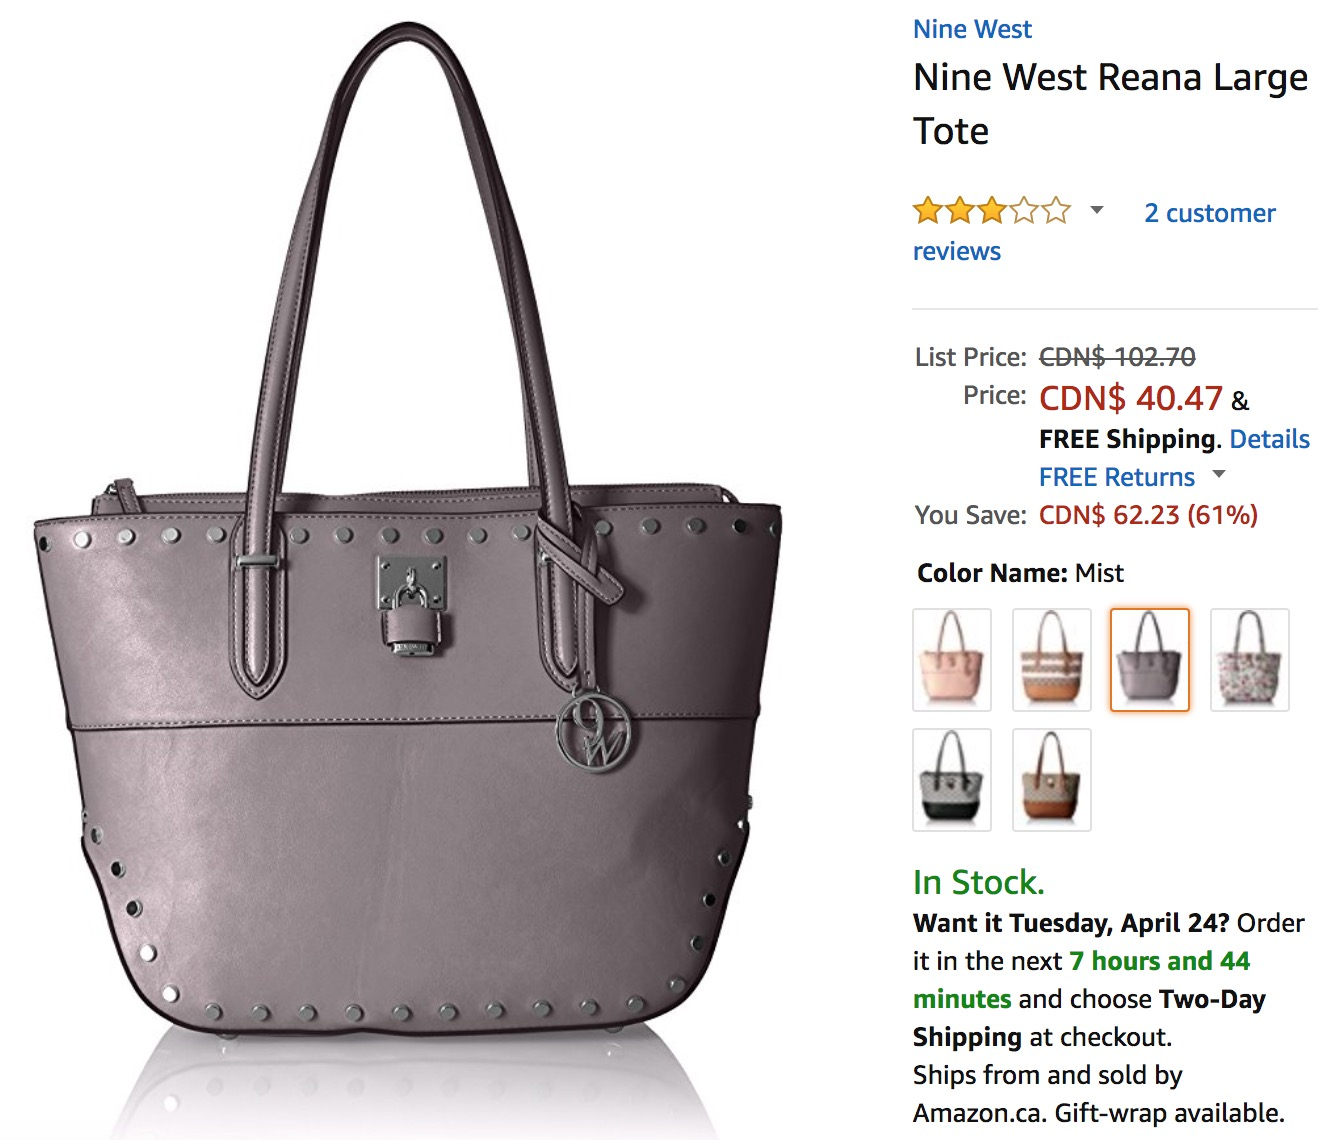 Daily Deals: 40 Off at Nine West, Free Shipping at J Crew recommend